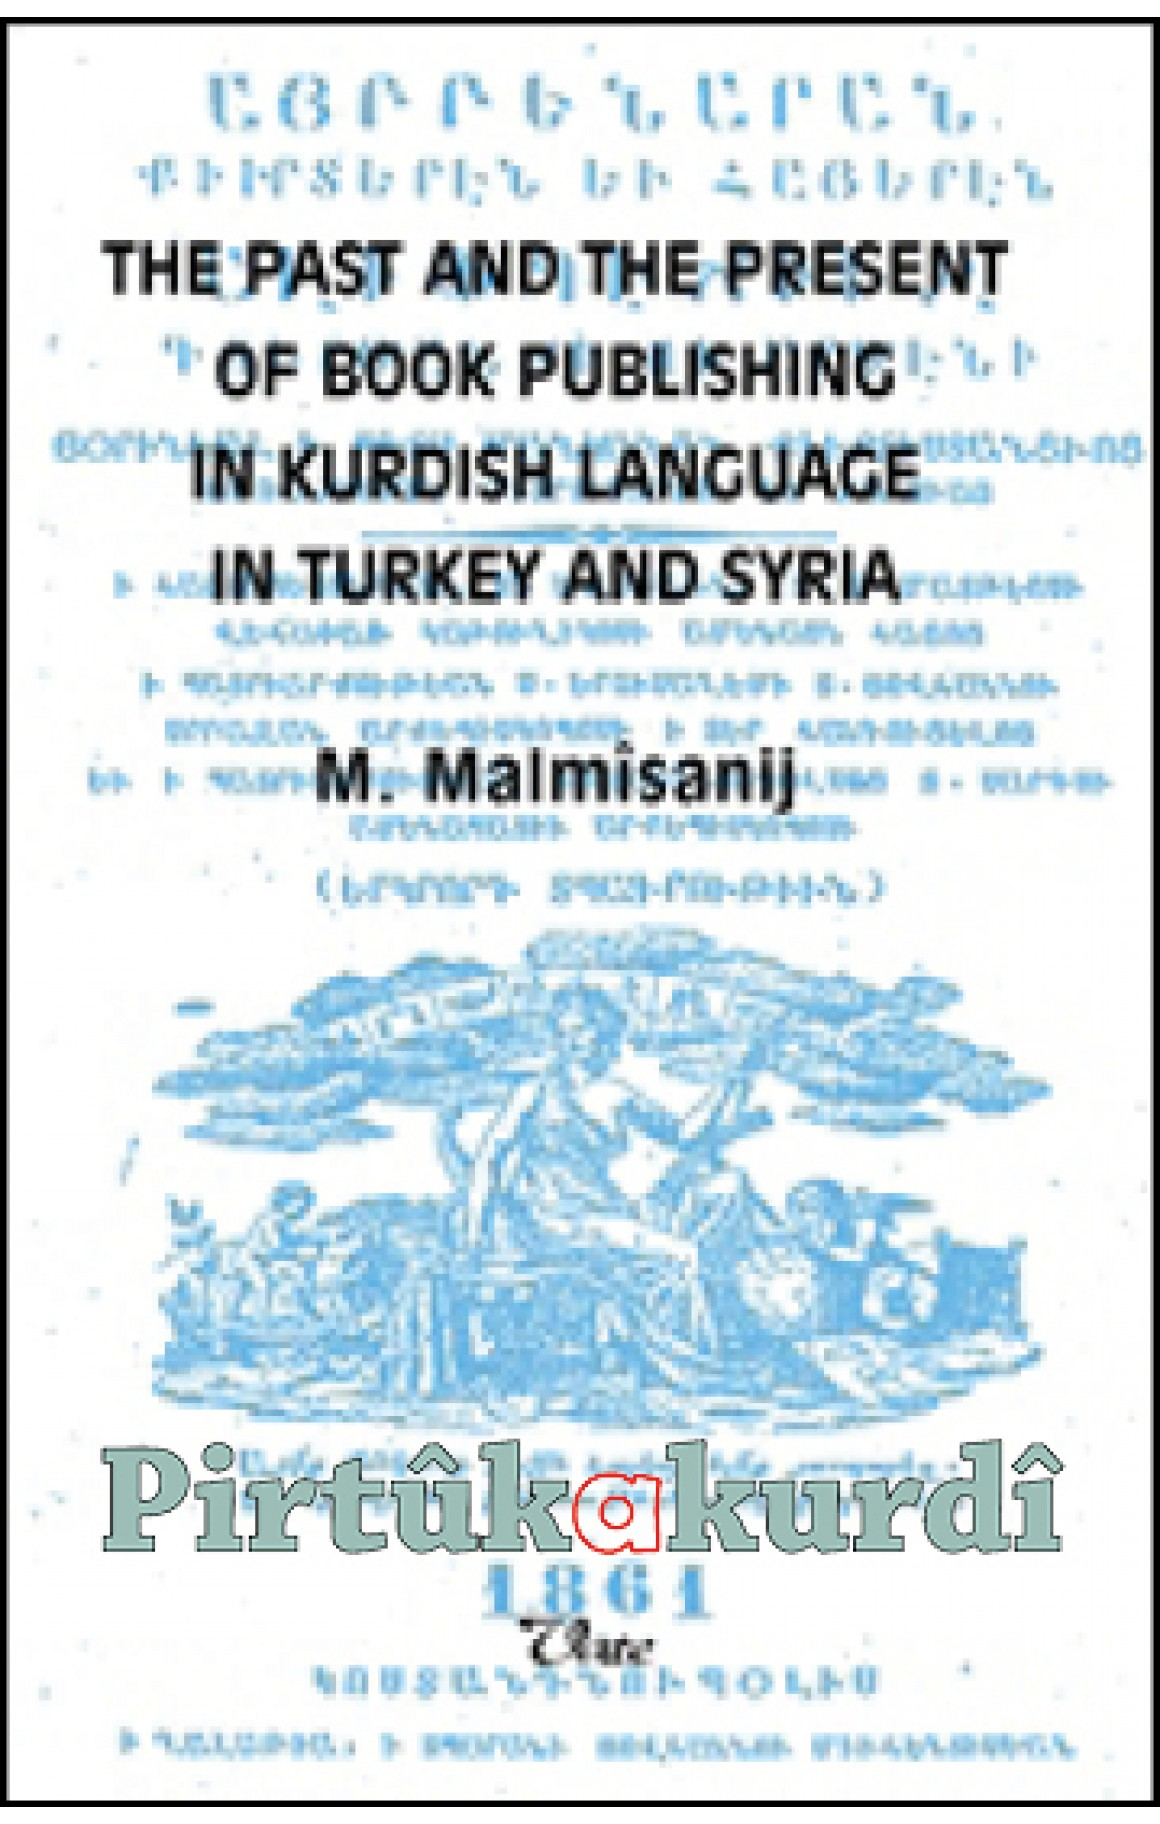 The Past and The Present of Book Publishing in Kurdish Language in Turkey and Syria